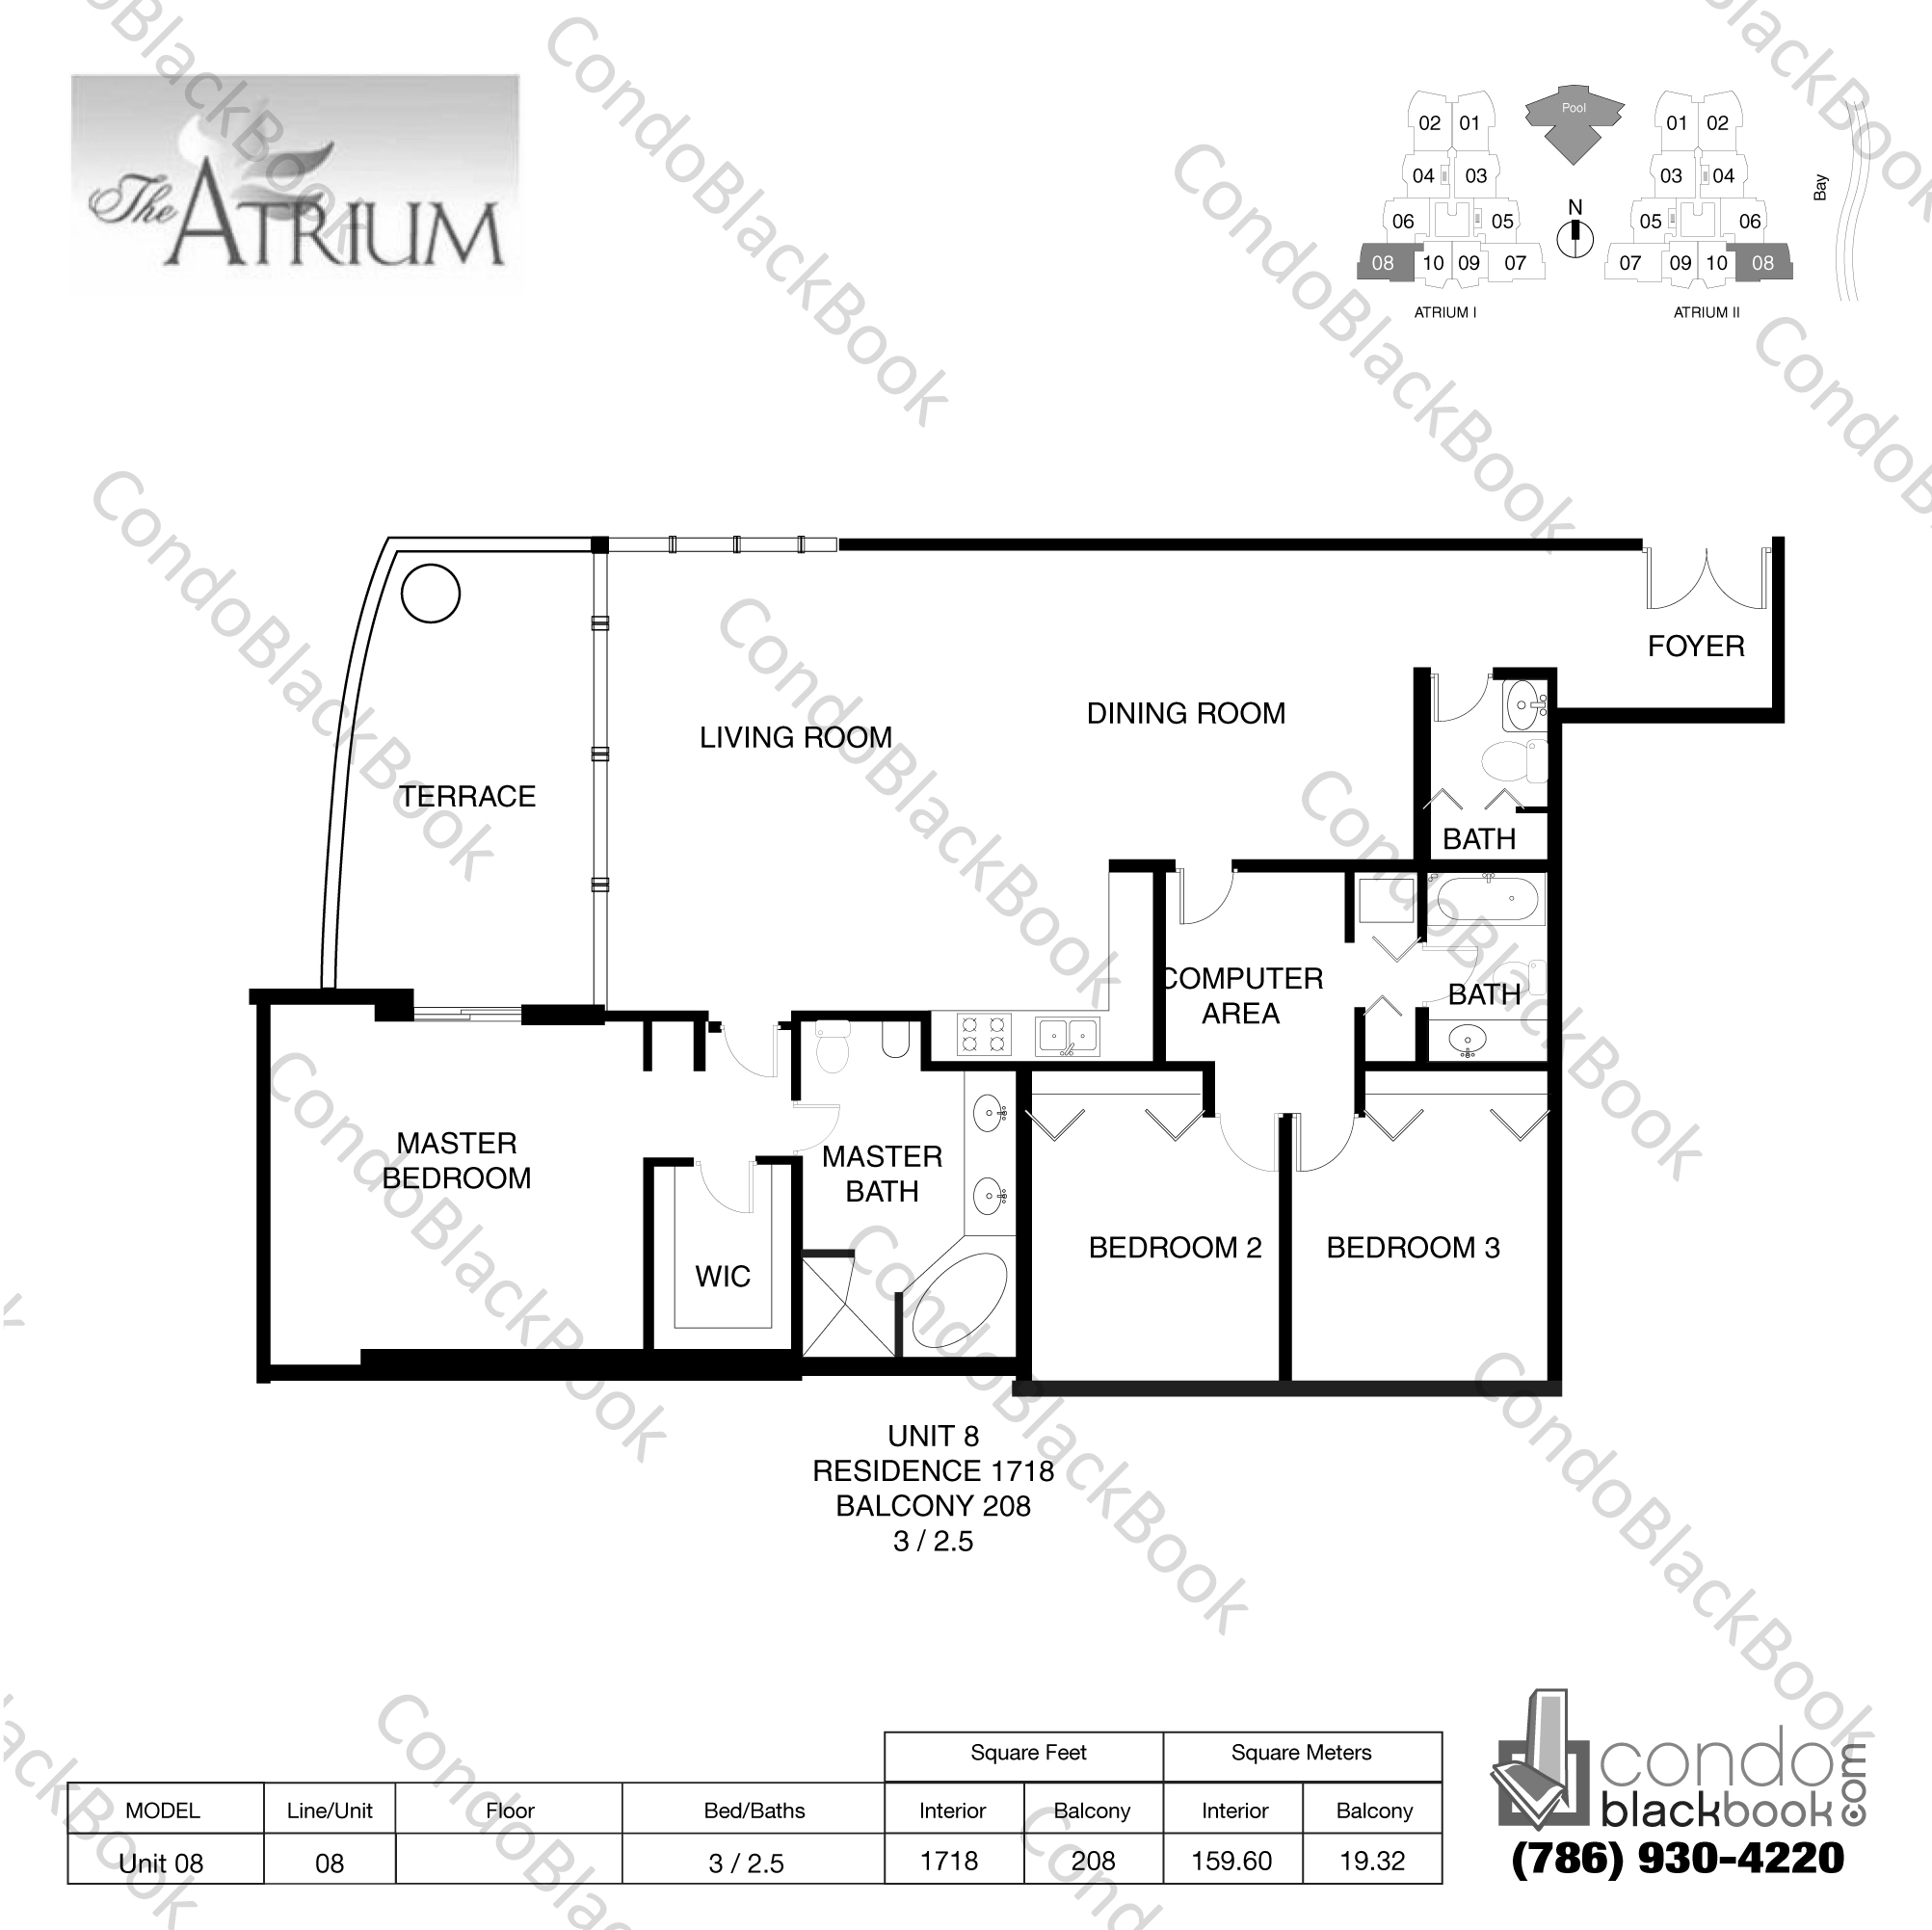 Floor plan for Atrium Aventura, model Unit 08, line 08, 3 / 2.5 bedrooms, 1718 sq ft